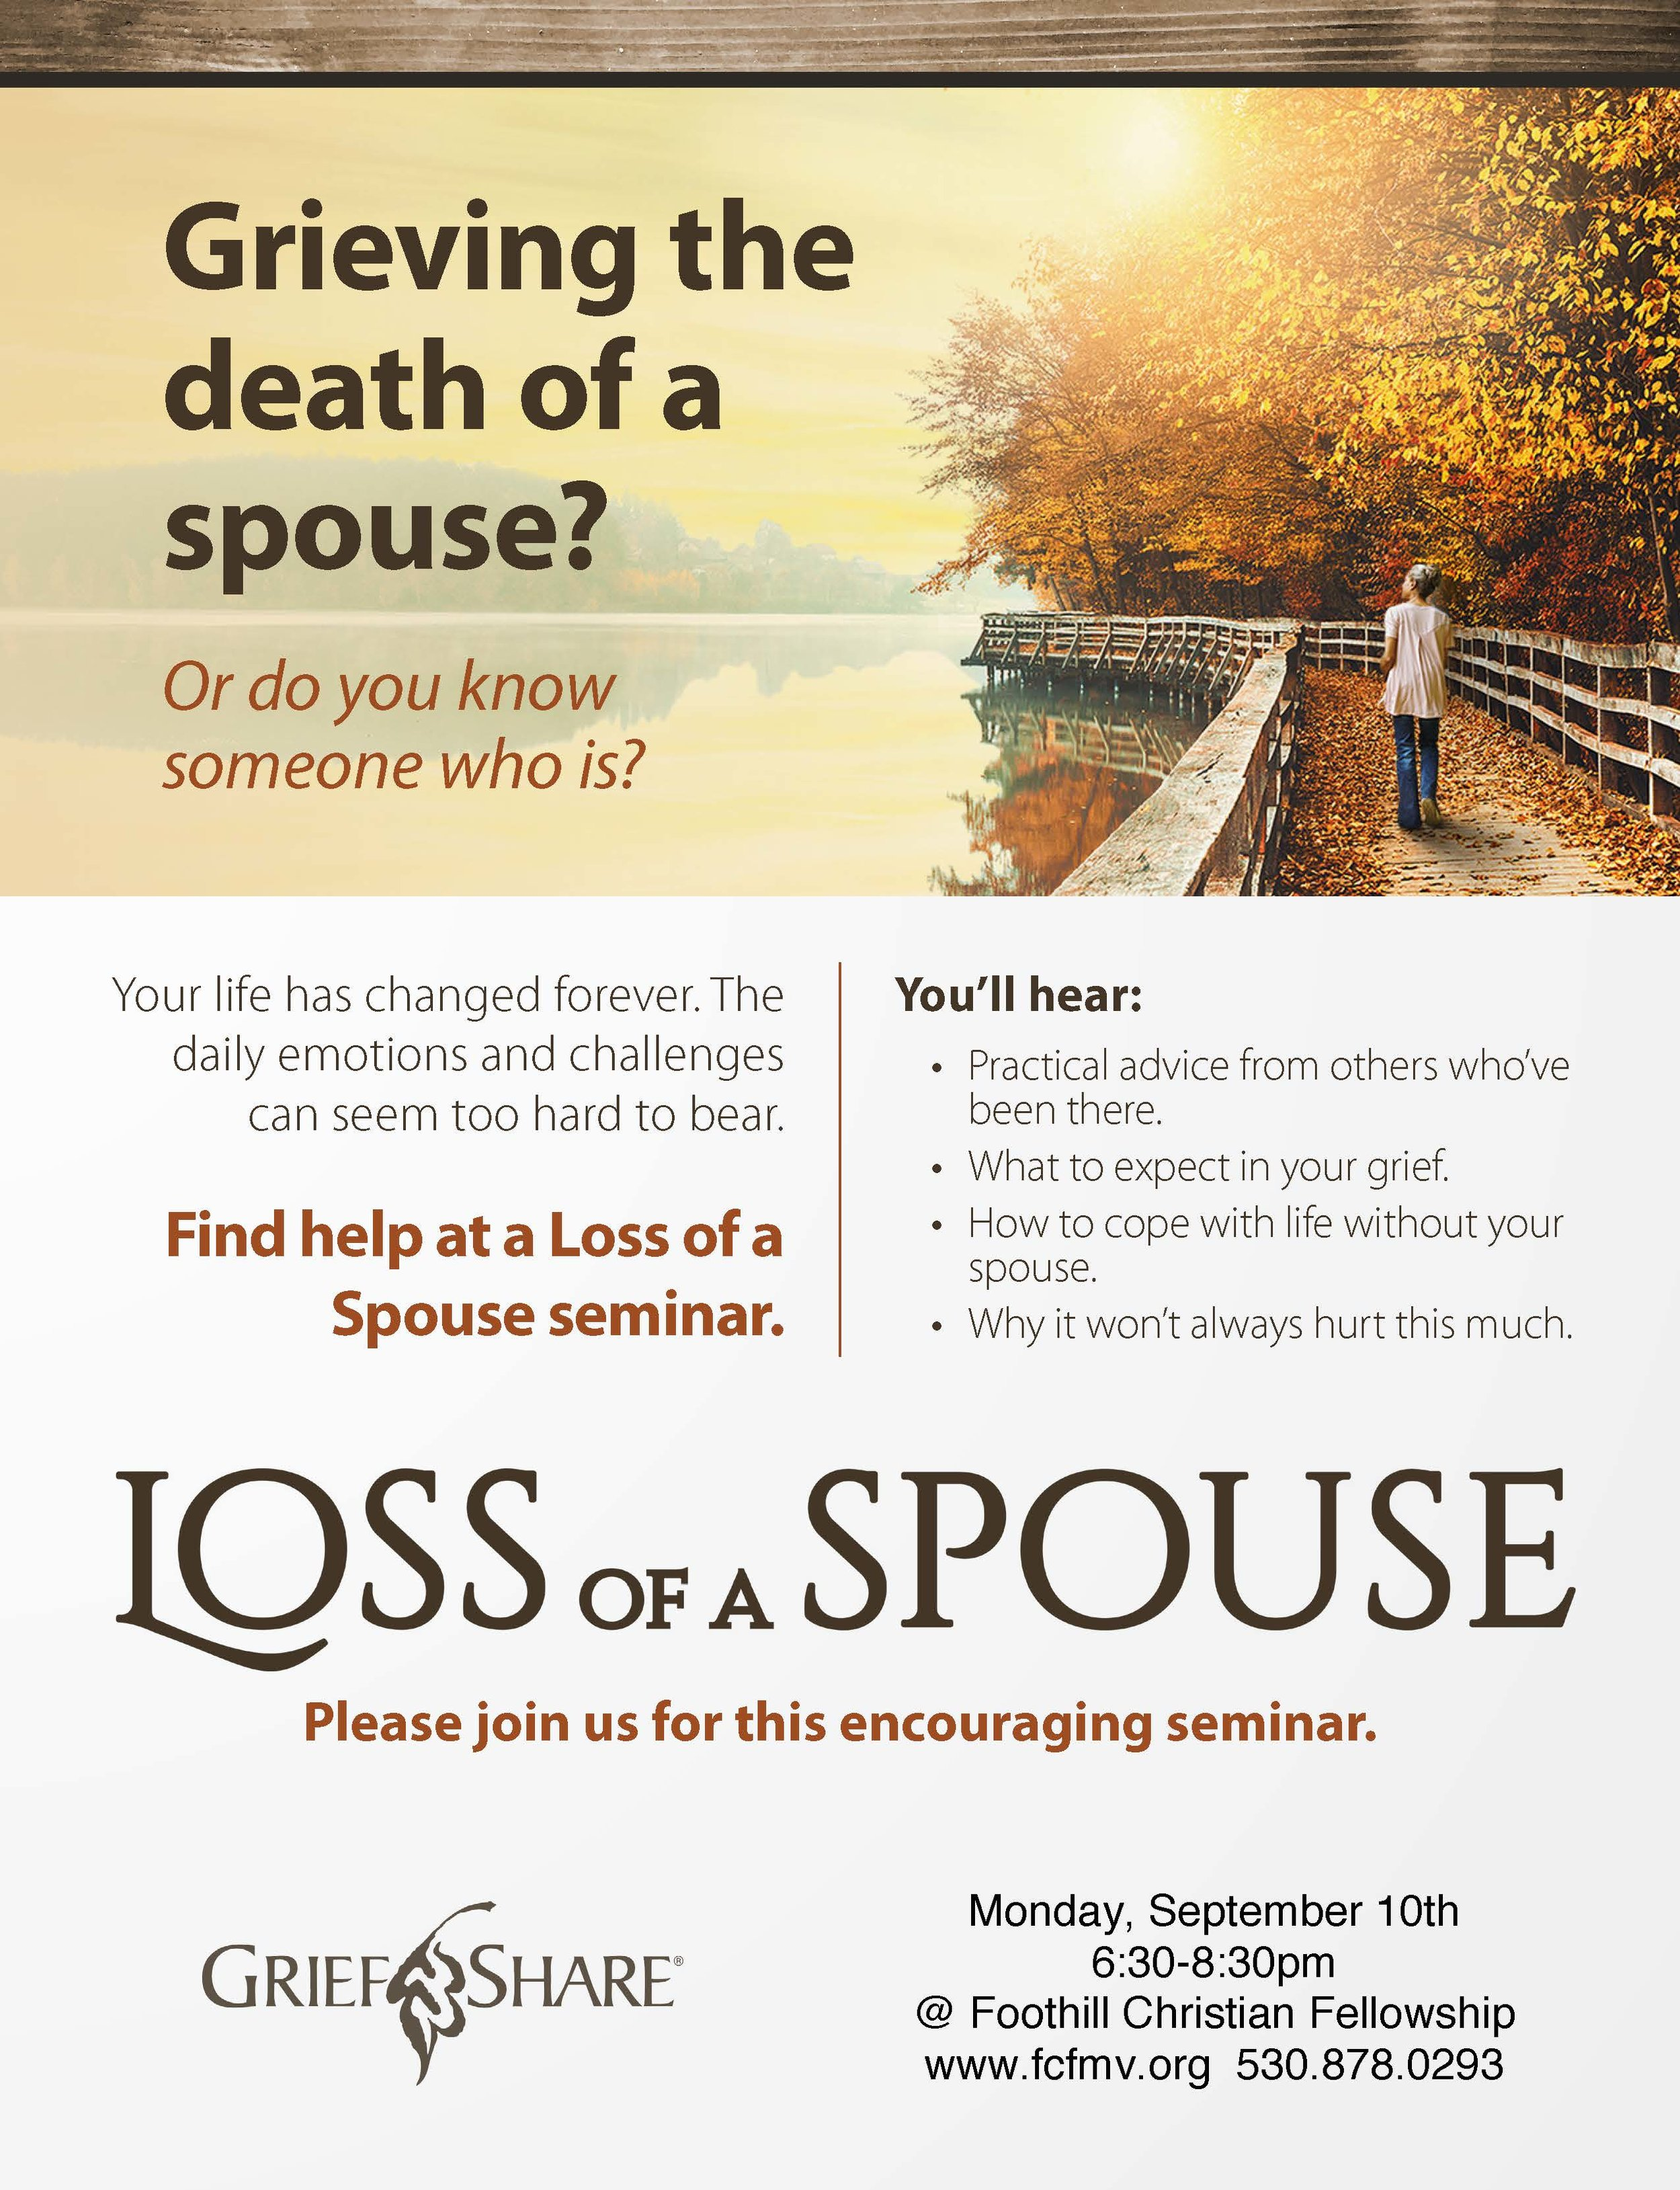 GriefShare Loss of a Spouse.jpg